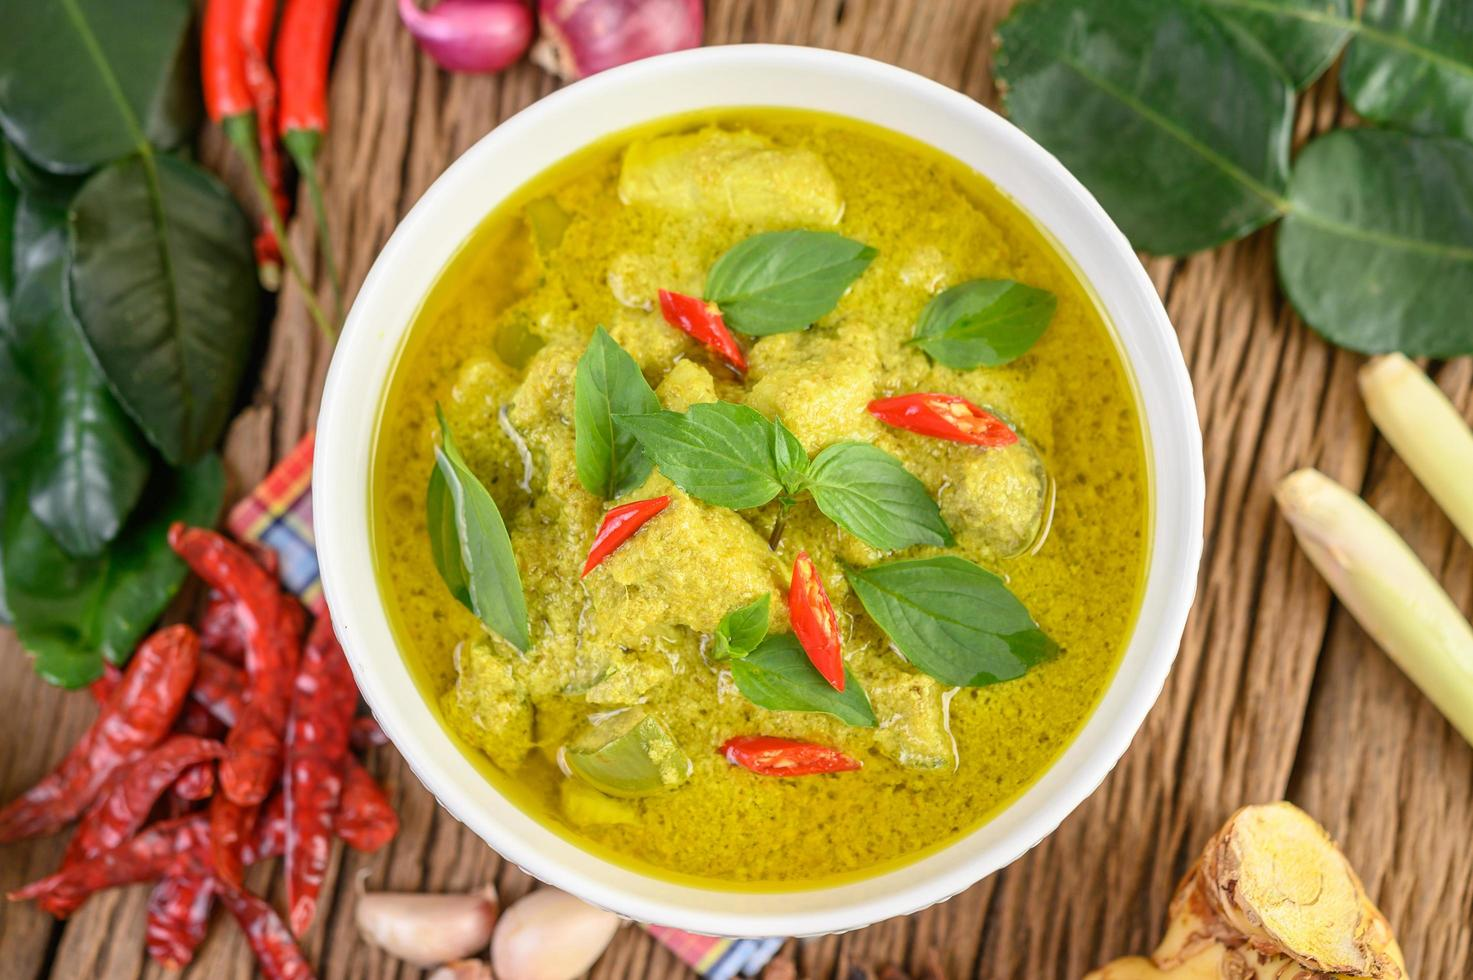 Green curry with limes, red onion, lemon grass, garlic and kaffir leaves photo